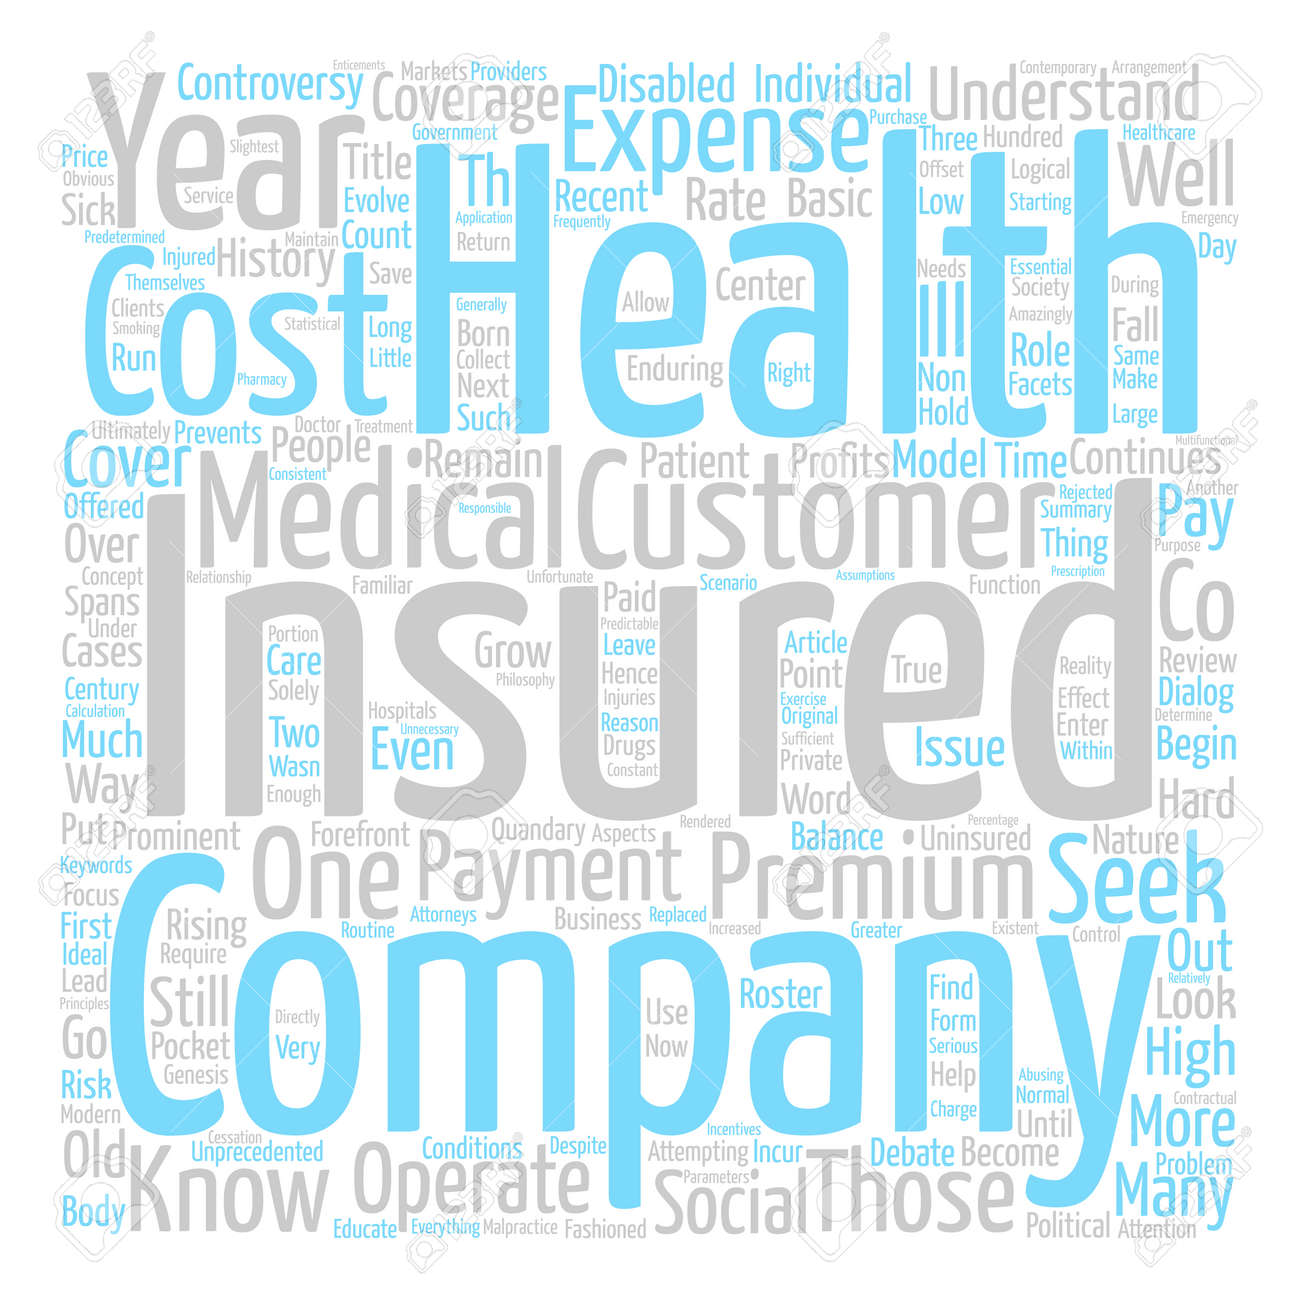 Health Insurance Companies >> Health Insurance Companies Still Operate The Old Fashioned Way Text